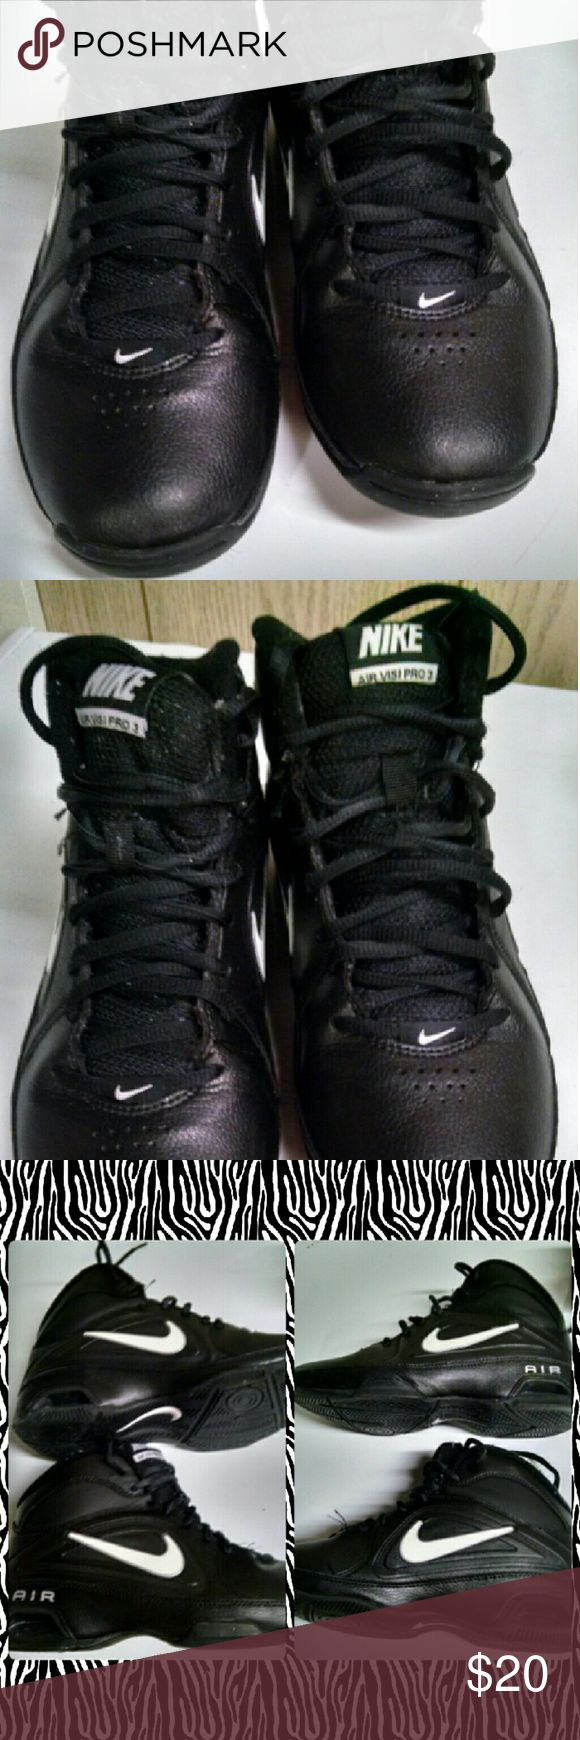 Nike Visi Pro 3 Ladies High Tops Size 7. True to size. Light wear on toes see Picts. Still lots of life left and an excellent basketball shoe!! Nike Shoes Athletic Shoes